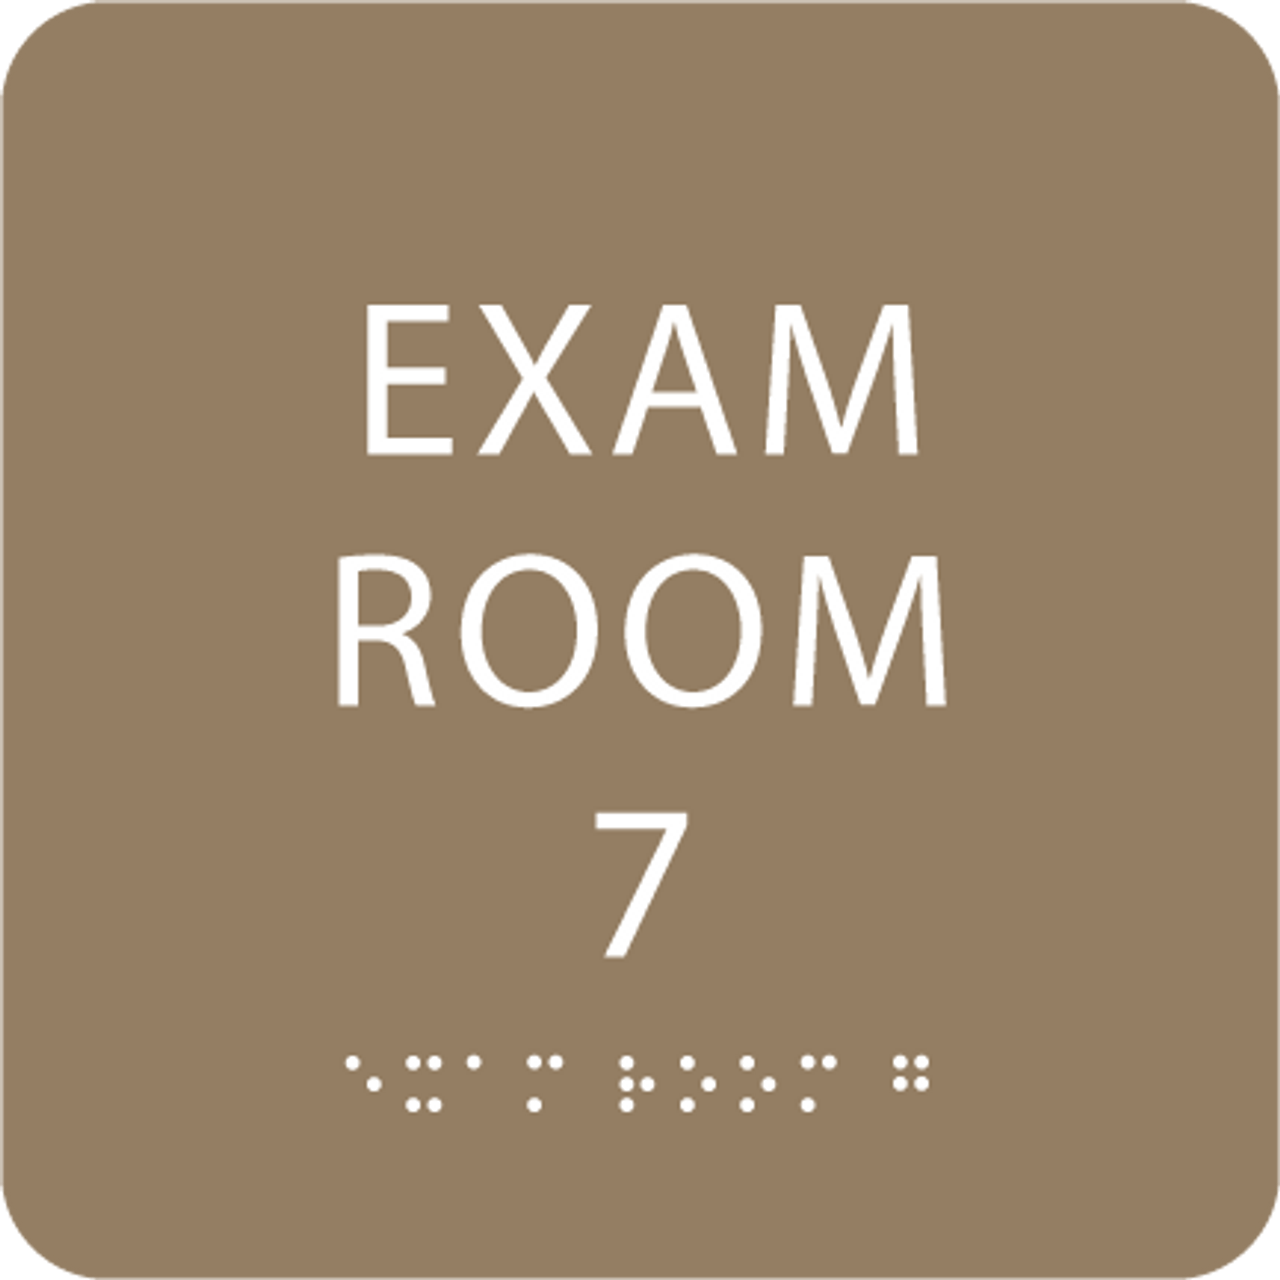 Light Brown Exam Room 7 Sign w/ ADA Braille